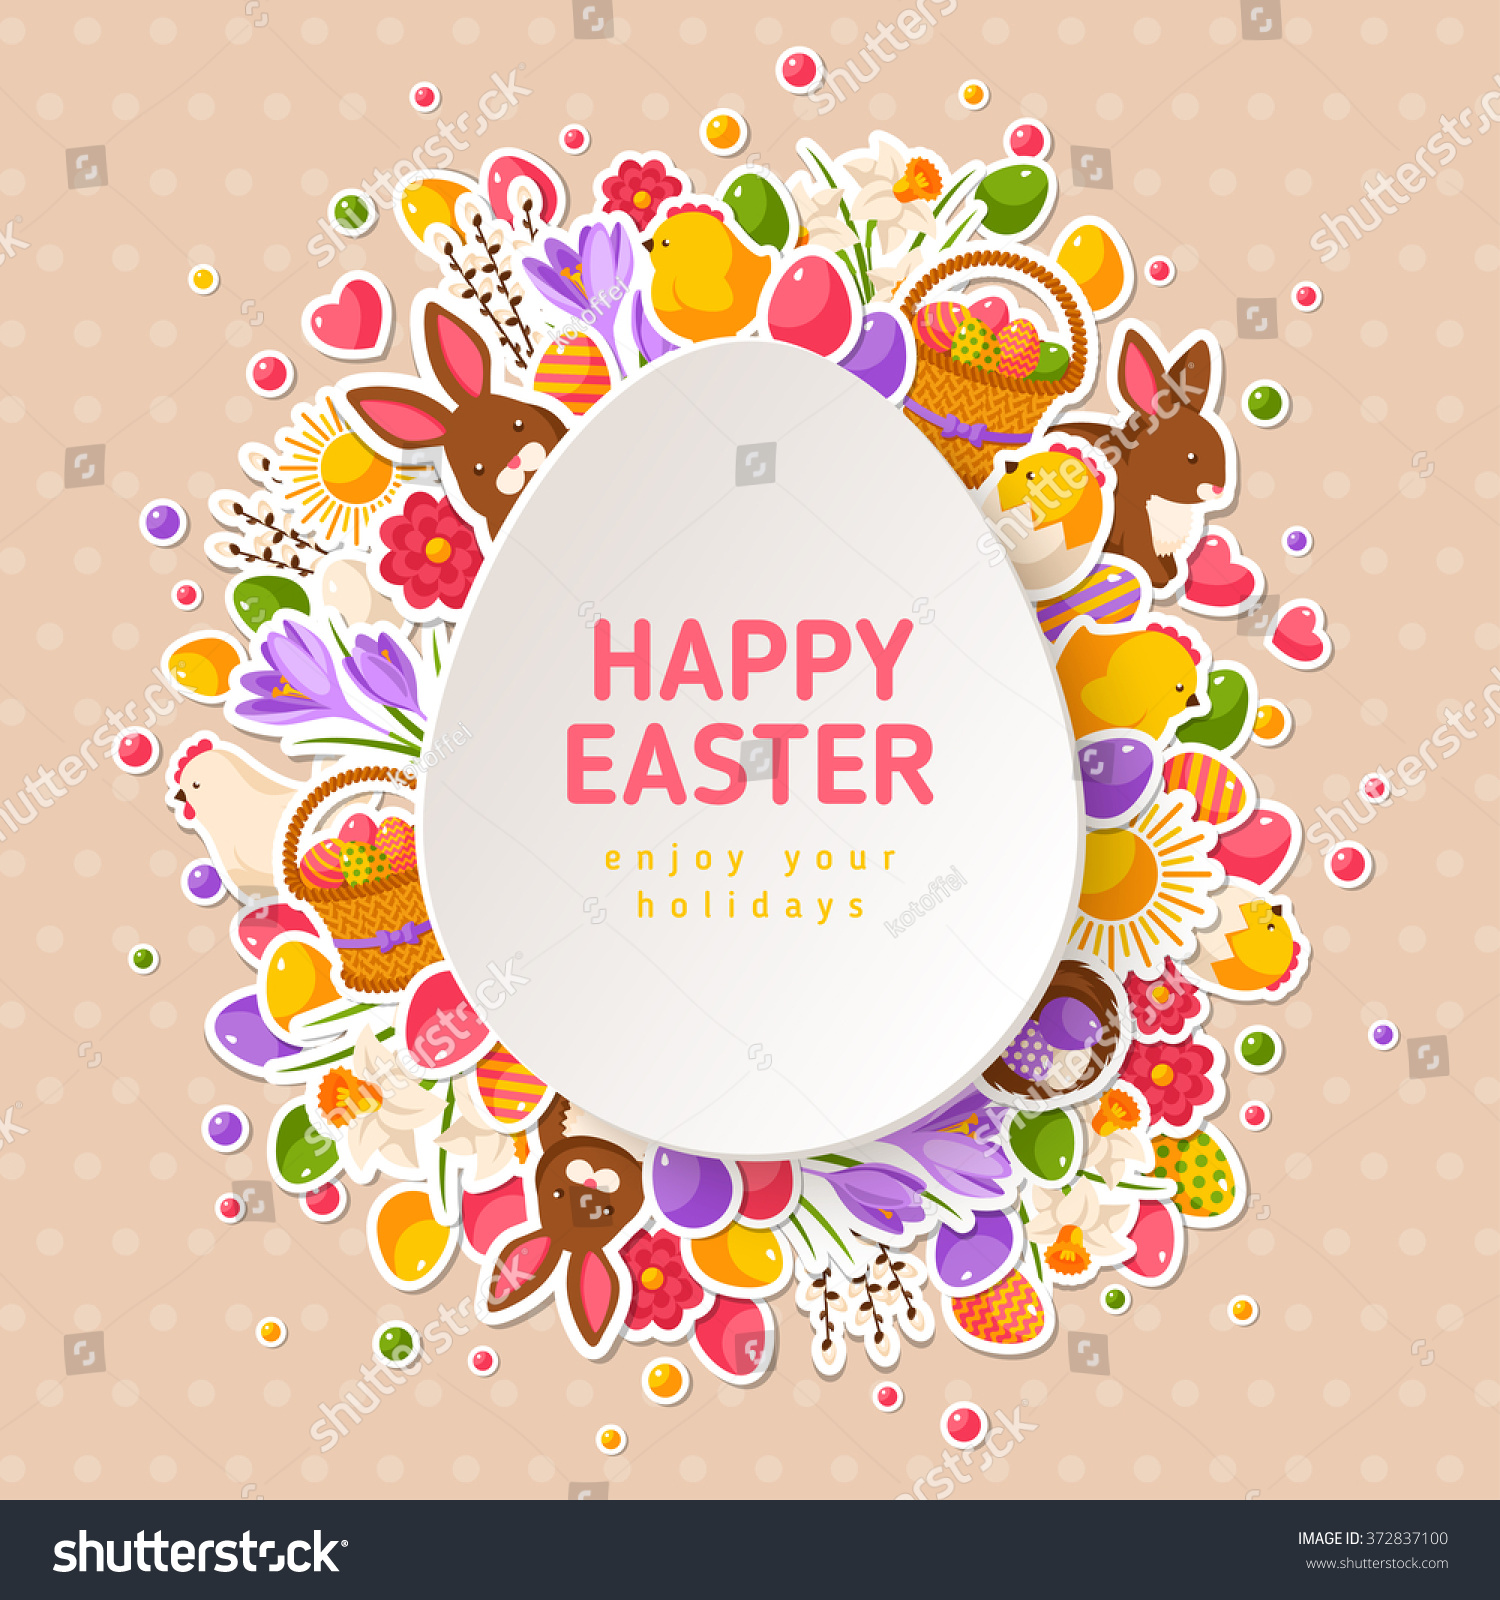 Happy Easter Greeting Cards Paper Cut Vector 372837100 – Easter Greeting Cards